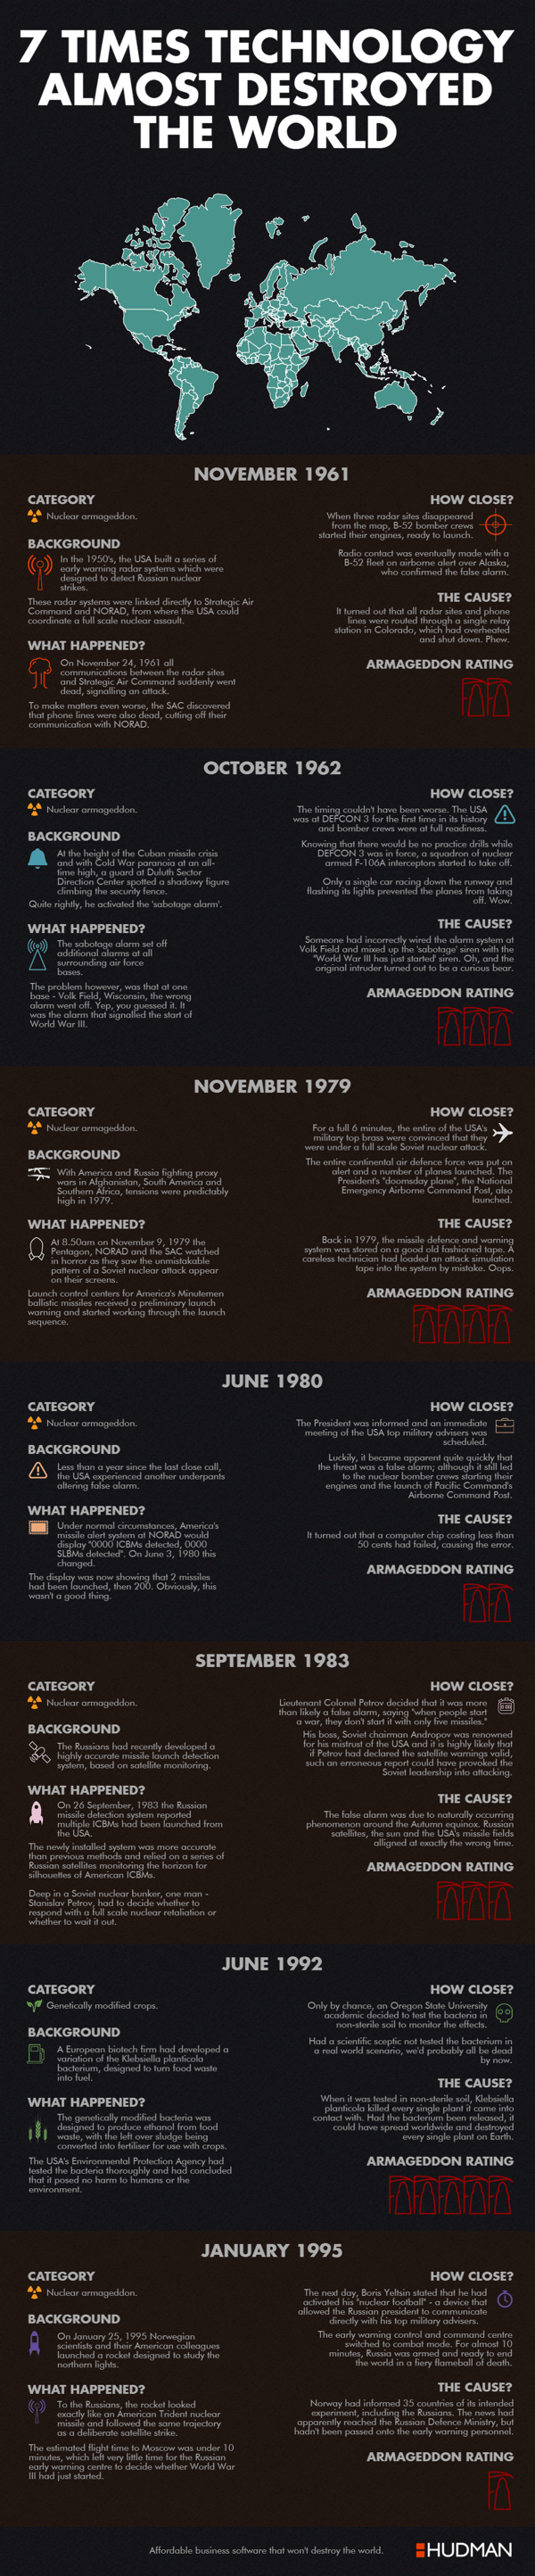 7 Times Technology Almost Destroyed The World infographic